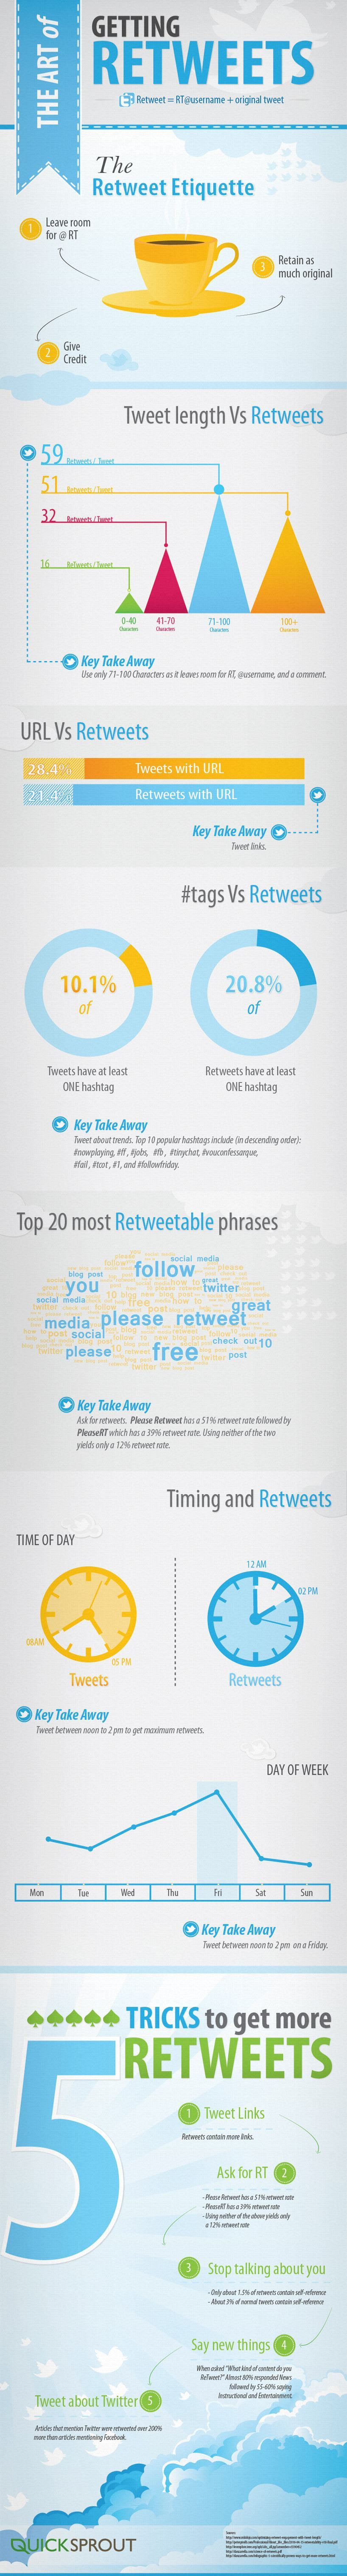 infographic: Get more retweets on Twitter